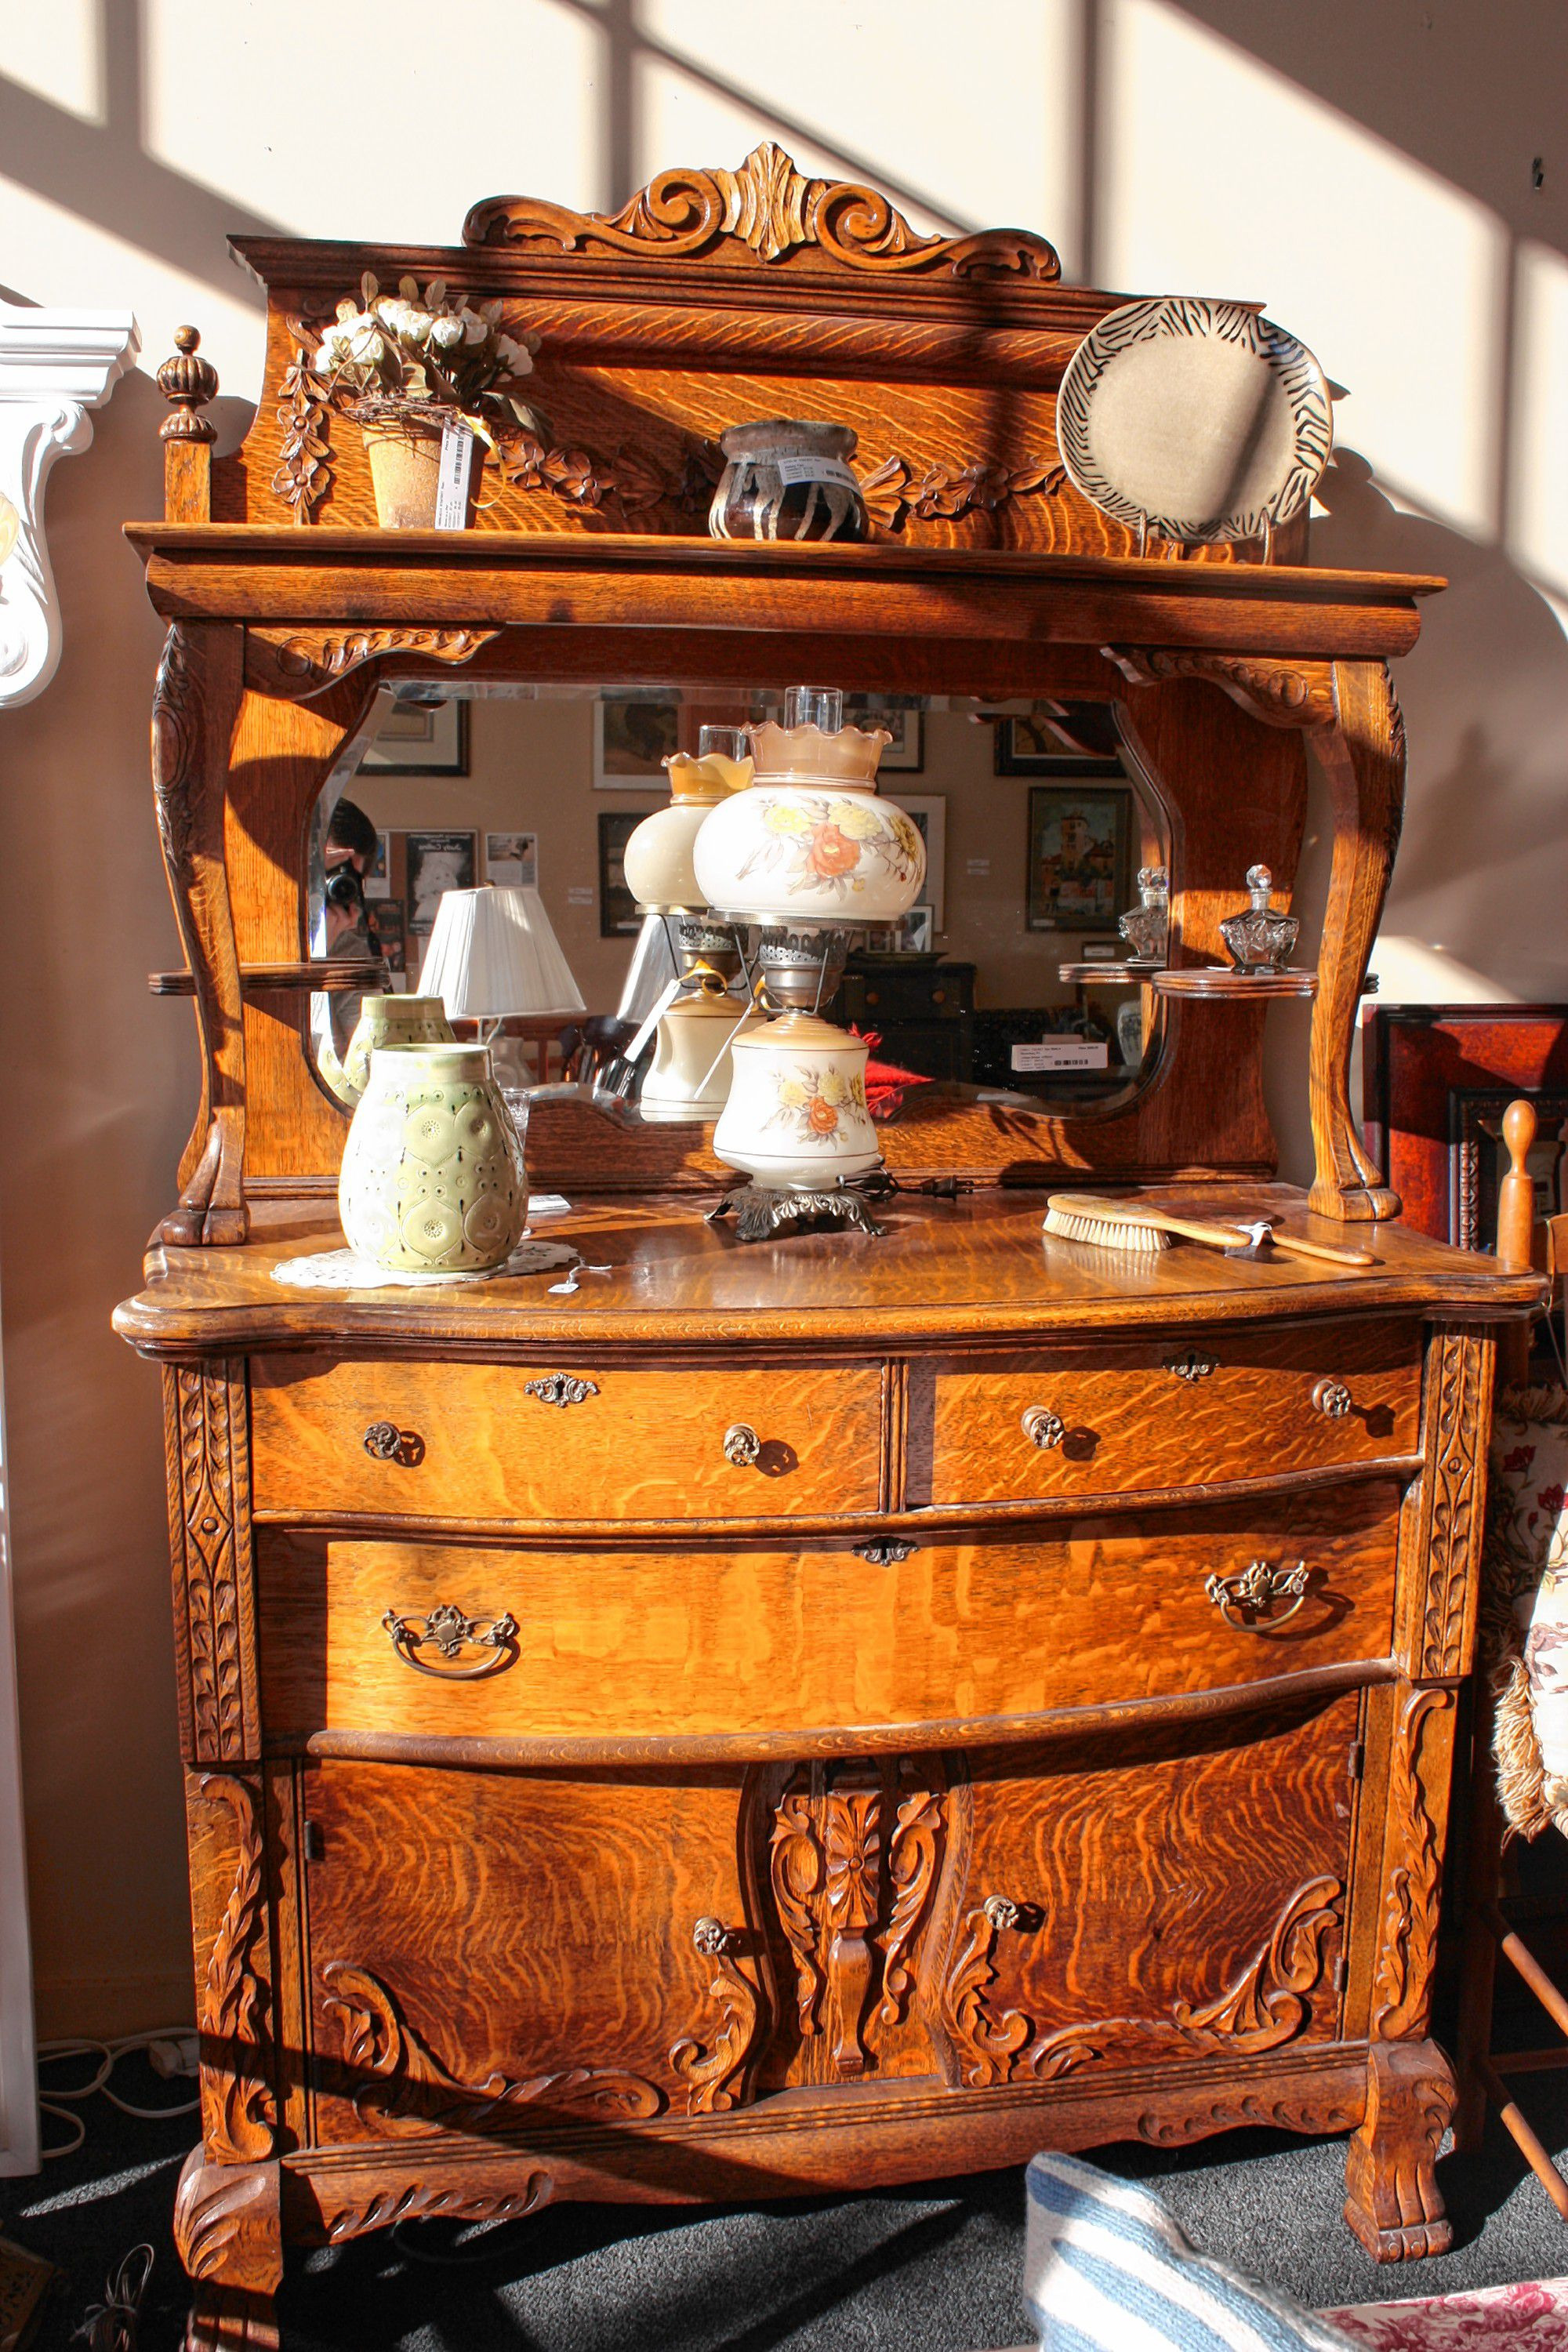 Definition Of Antique Furniture New What Exactly Makes An Item An Antique and How Can You Tell